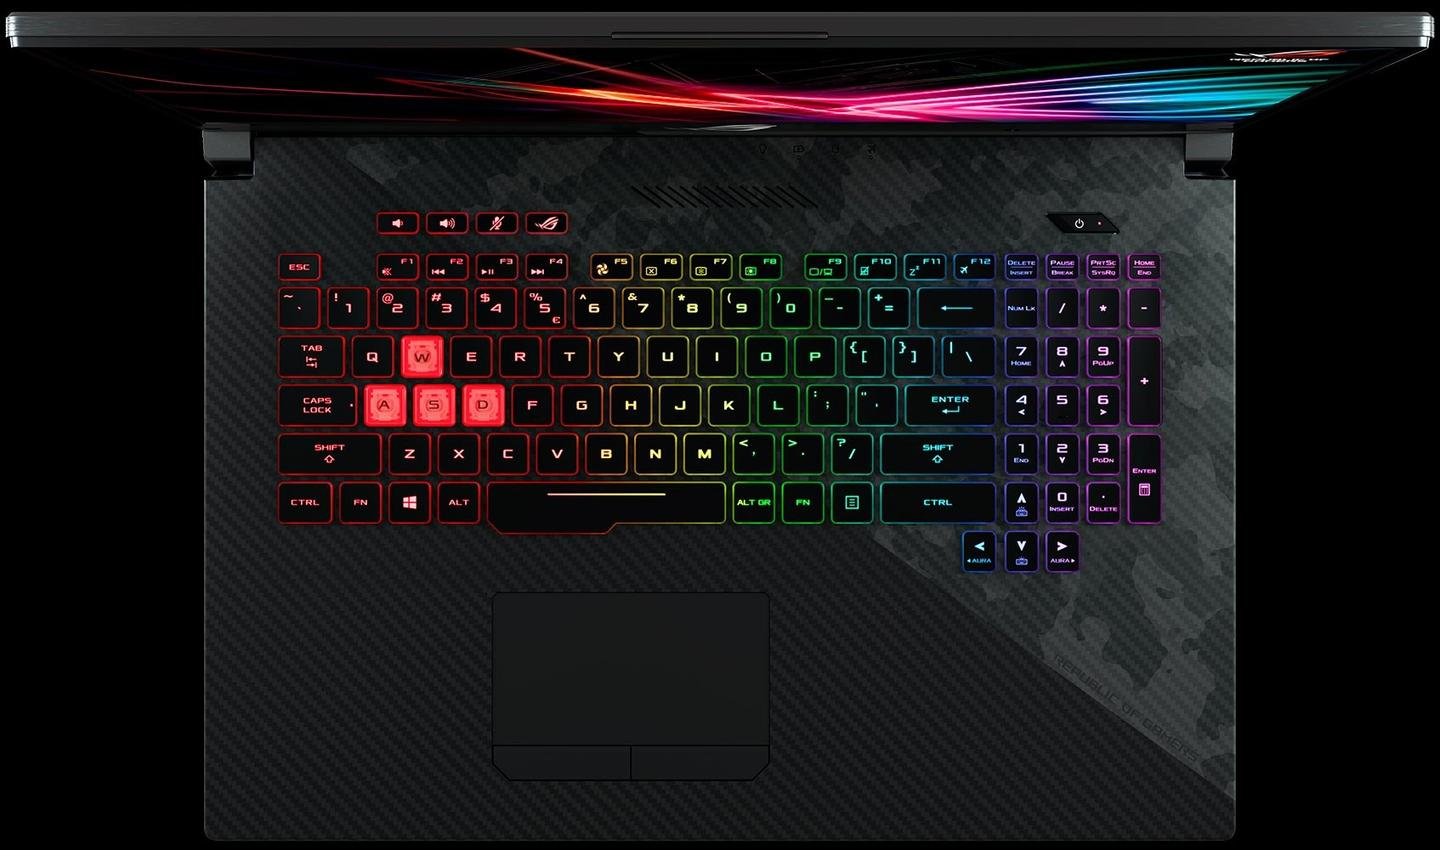 The Strix SCAR II (GL704) sports a desktop-style RGB backlit keyboard with an overstroke feature, which actuates on half-press keystrokes for improved response times